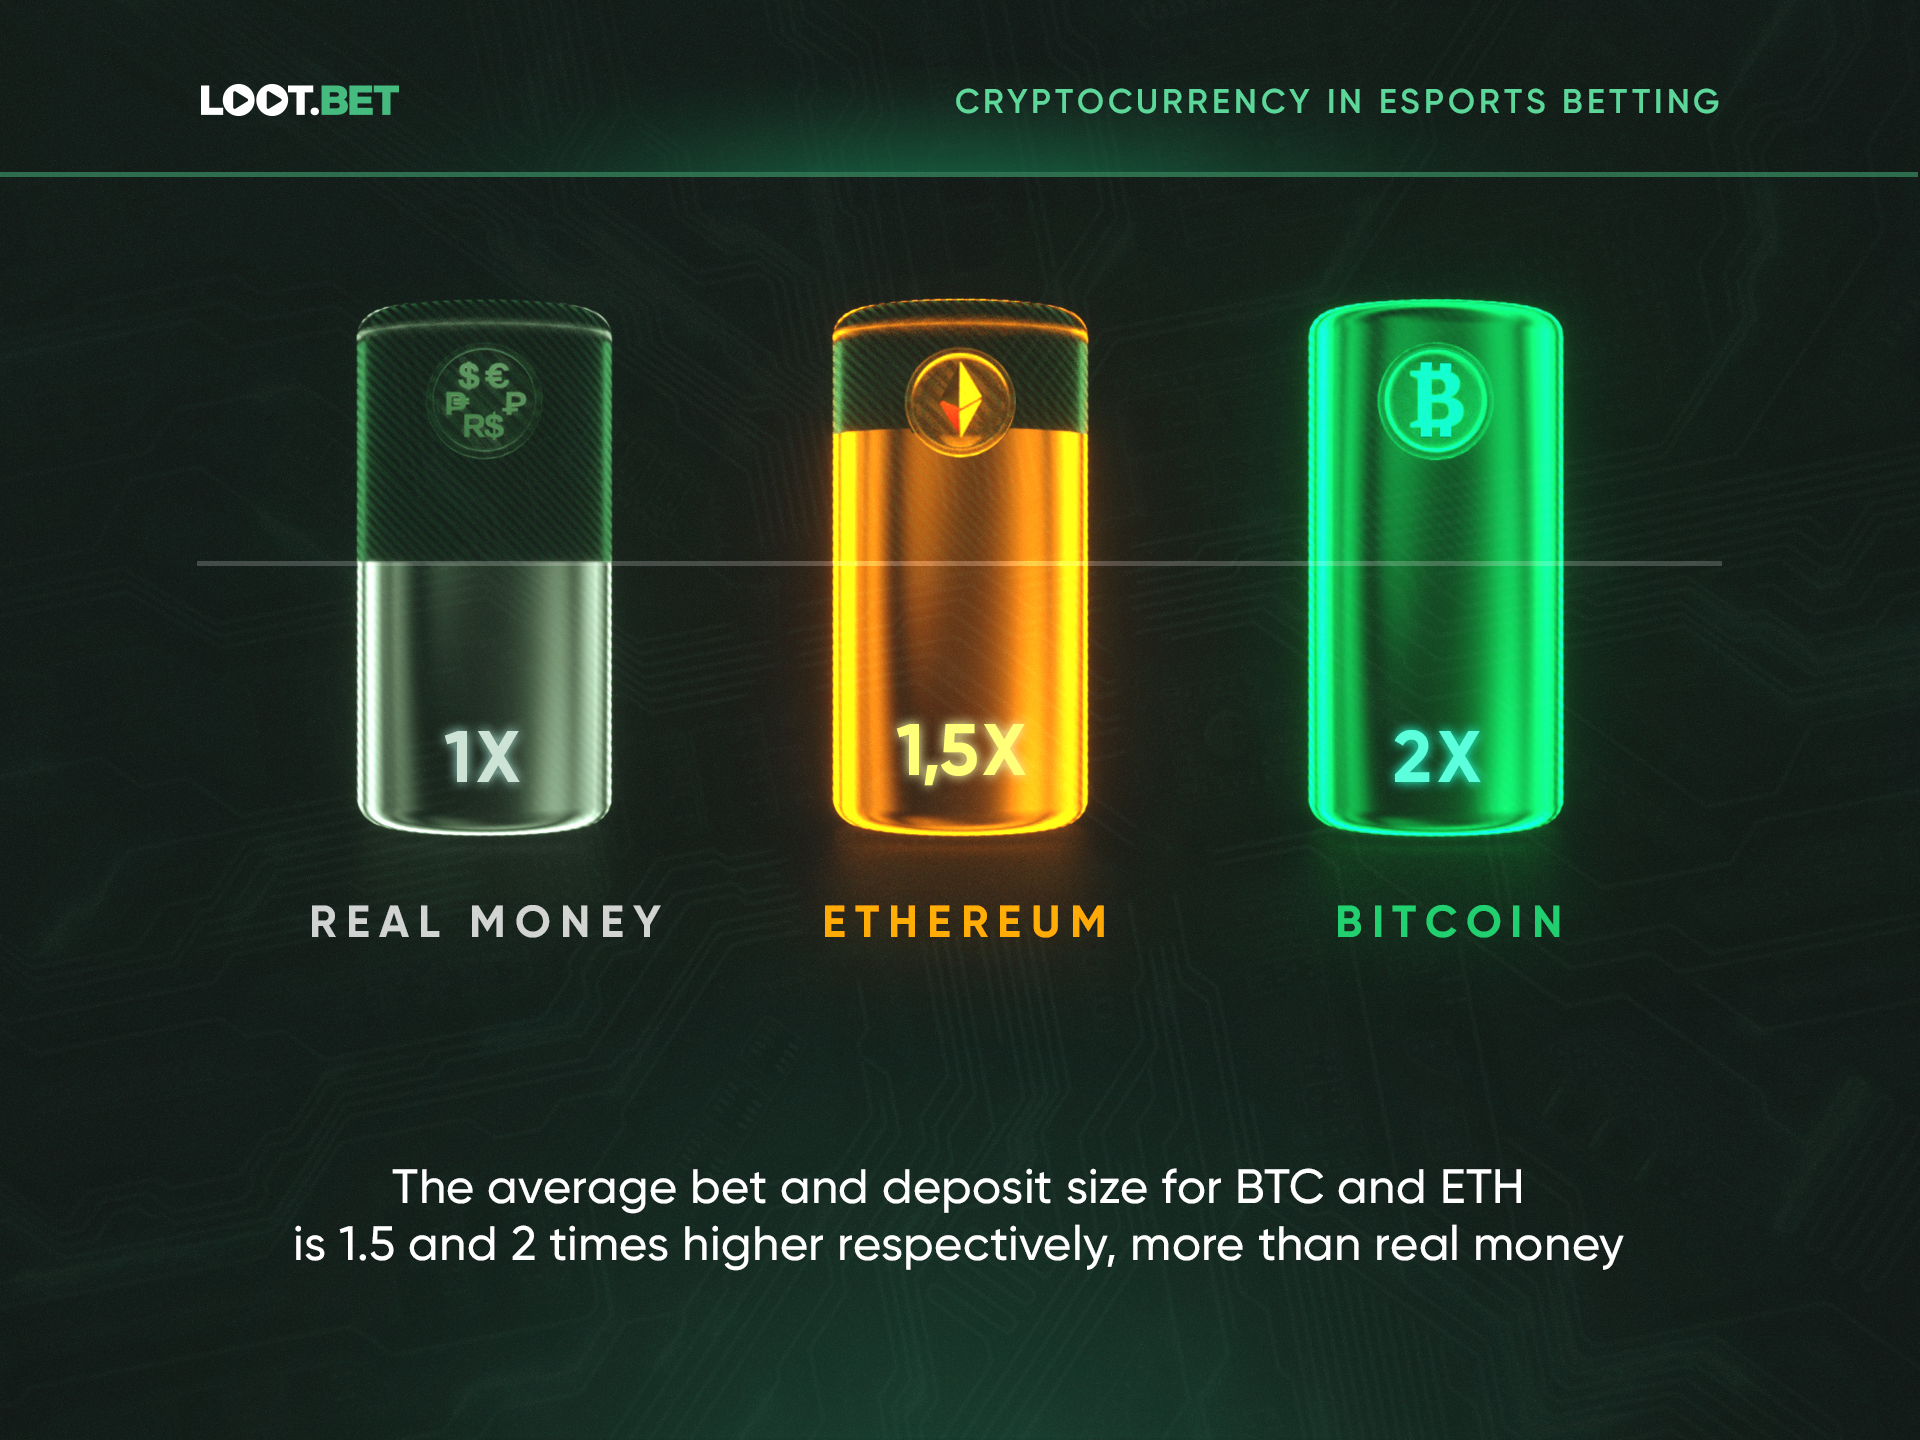 Crypto Esports Betting 2 - Research Reveals Cryptocurrency Owners to Be the Riskiest Esports Bettors